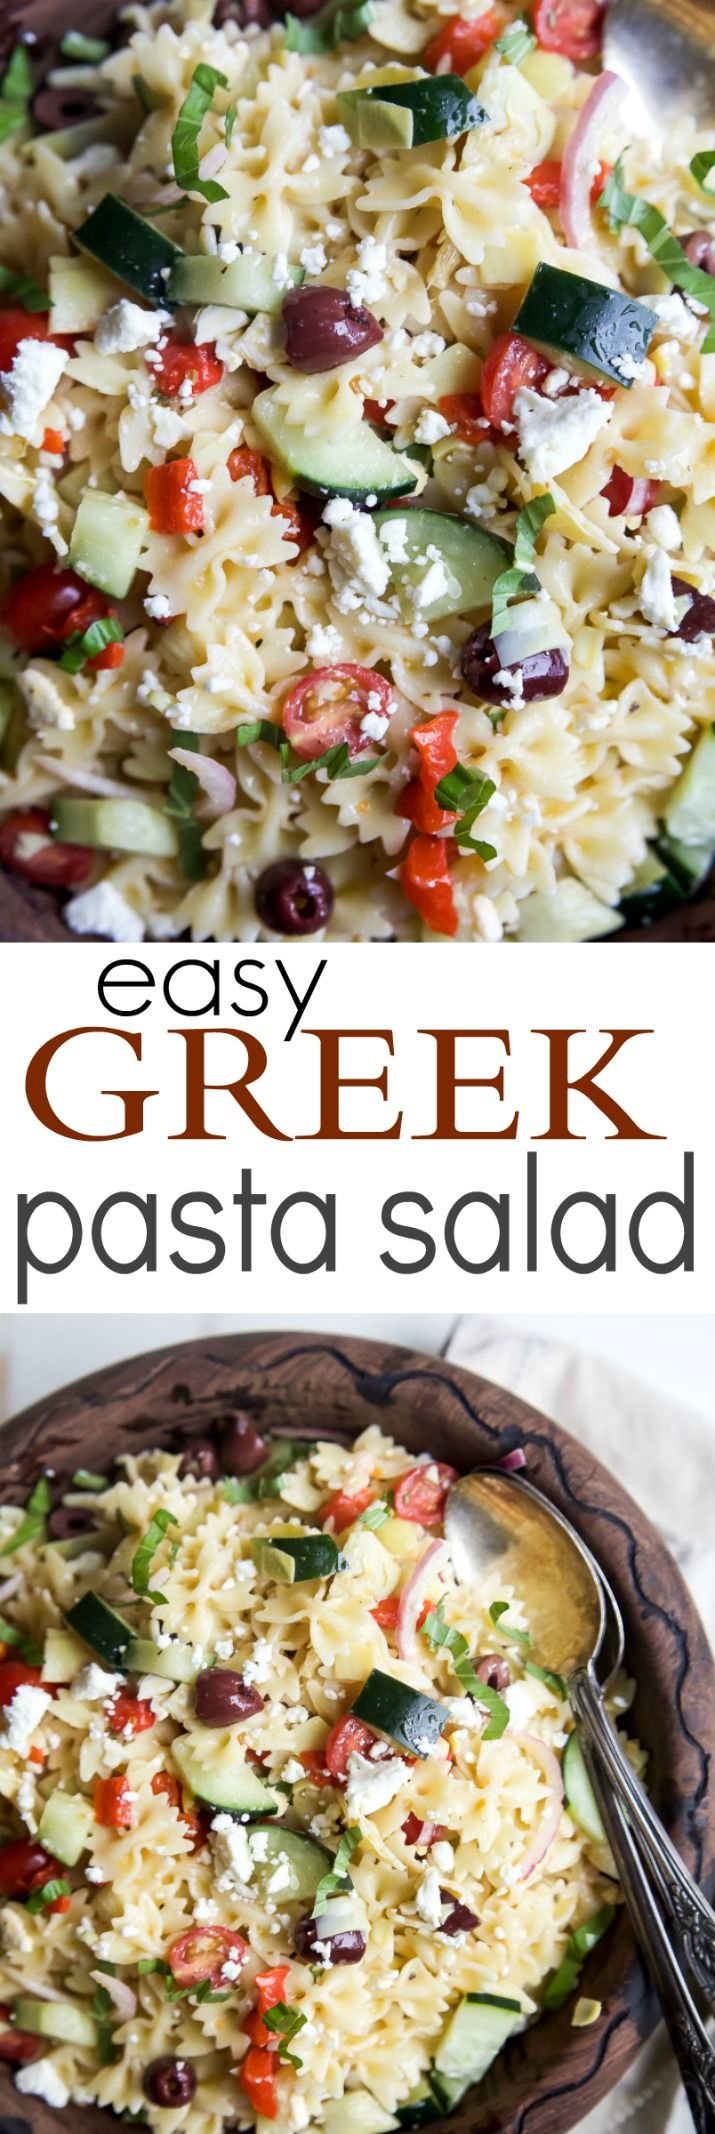 Simple Greek Pasta Salad with cherry tomatoes, artichokes, olives, red ...